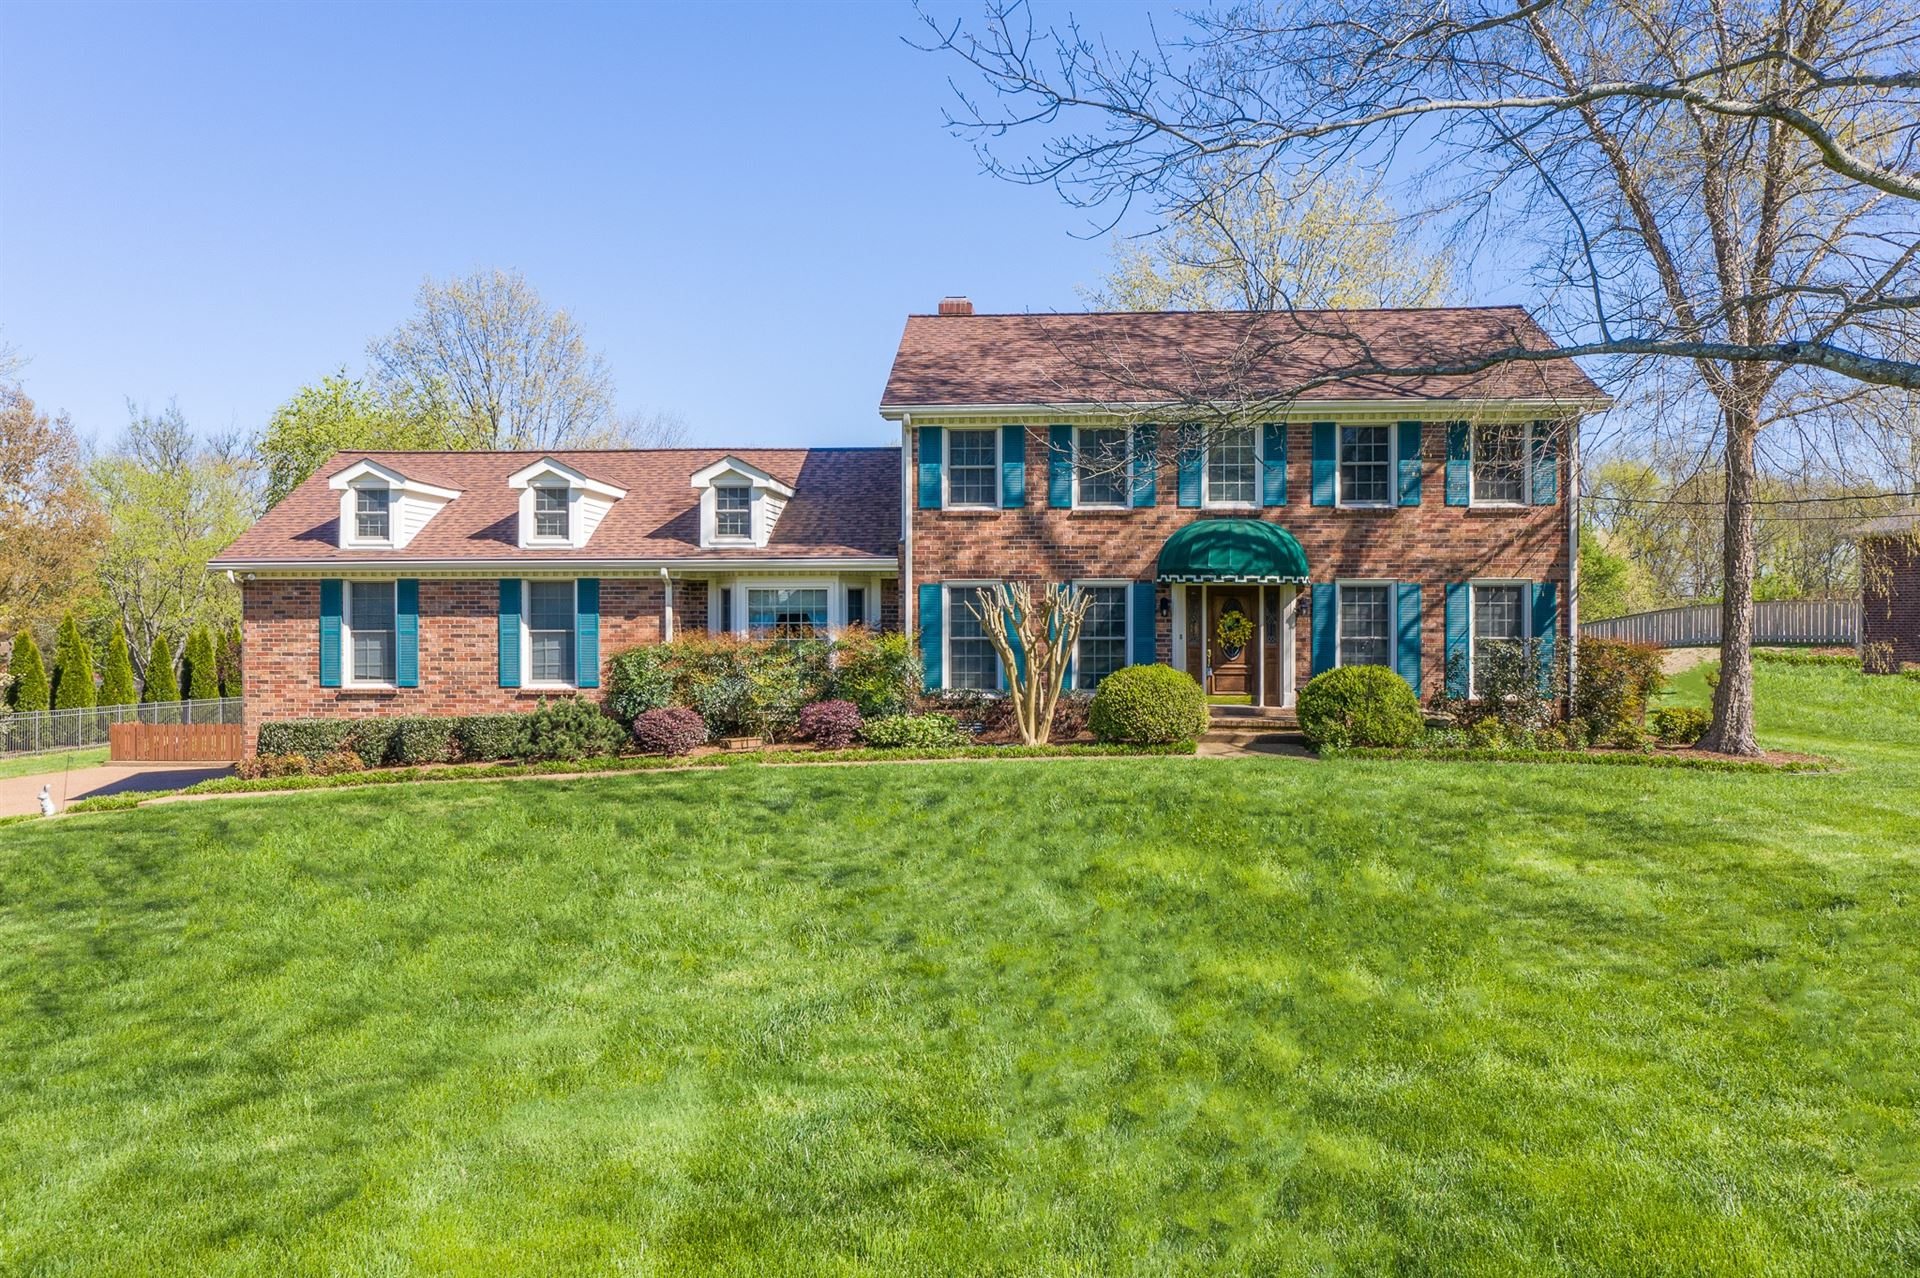 Photo of 1014 Steeplechase Dr, Brentwood, TN 37027 (MLS # 2136160)